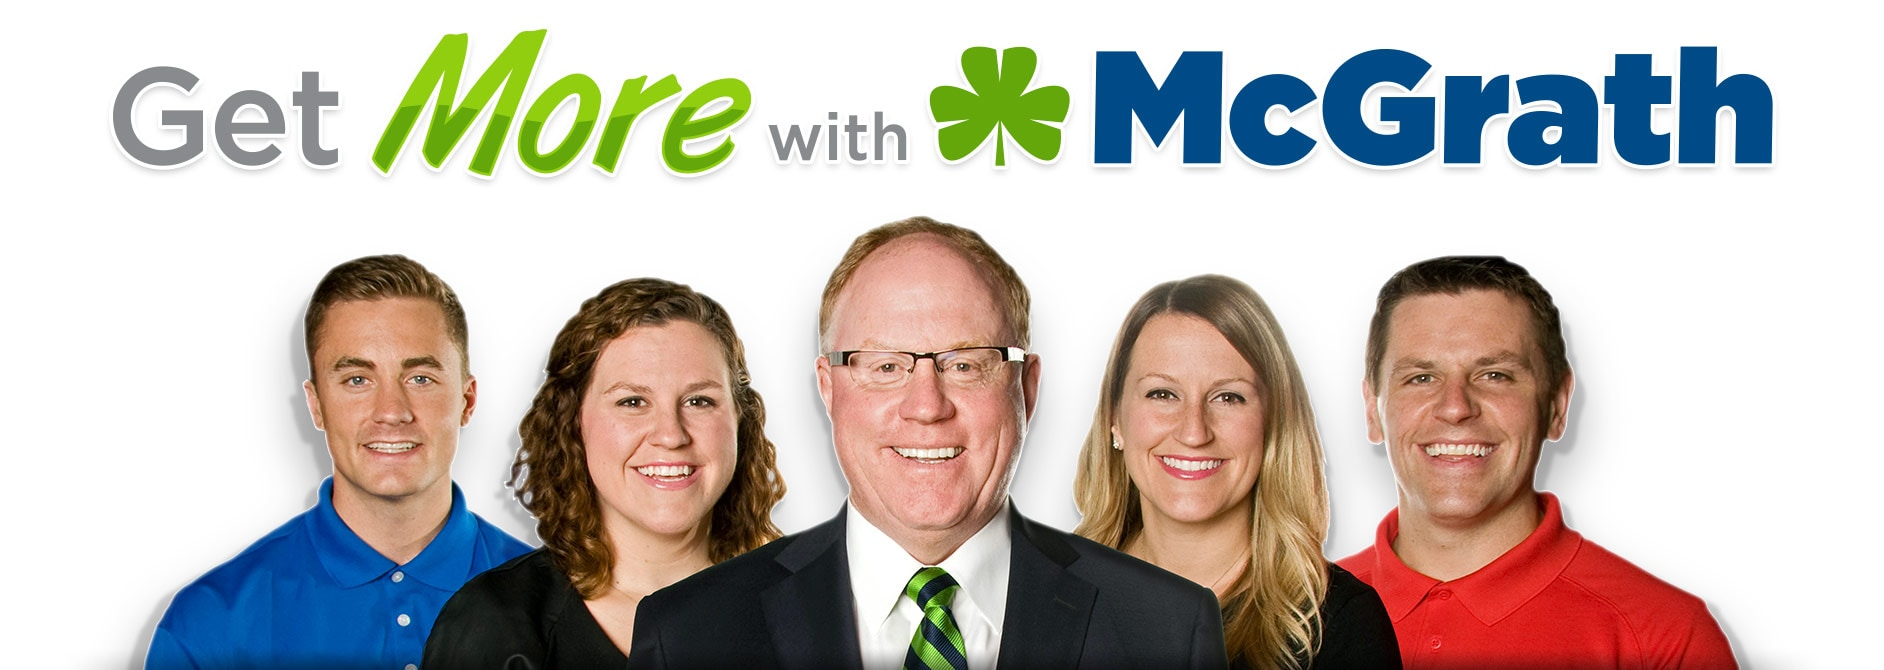 Get More with McGrath Family of Dealerships